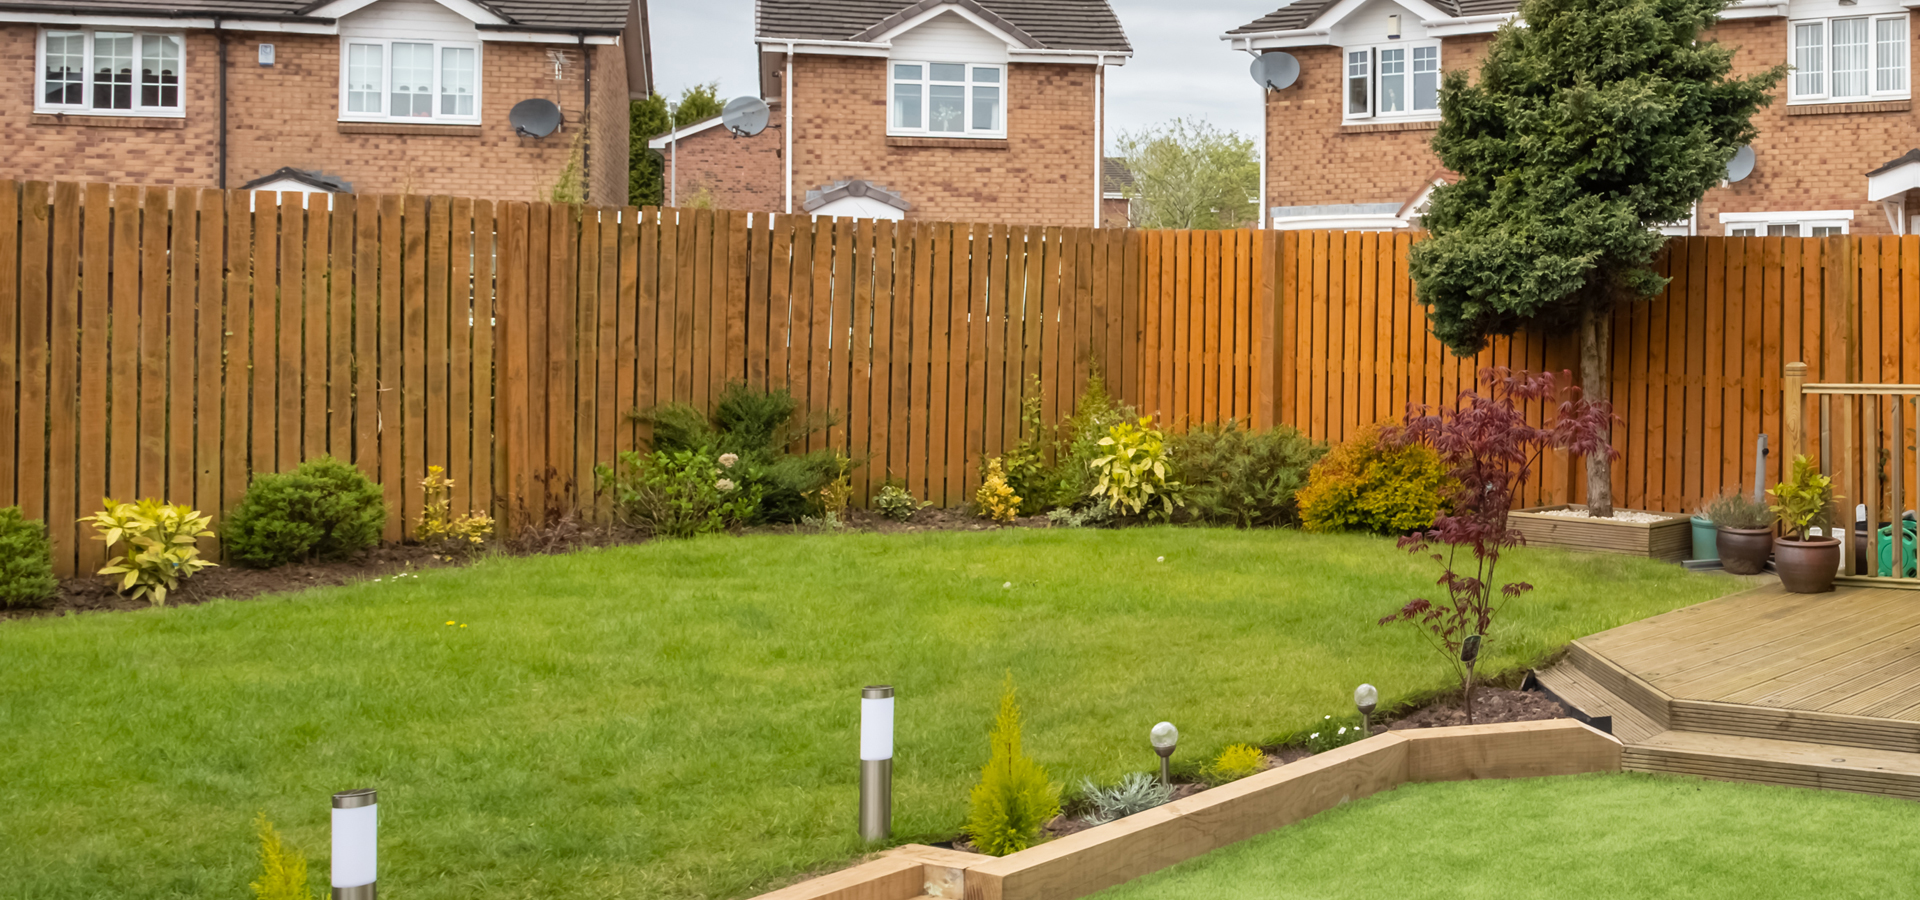 fencing and Decking great North Landscaping